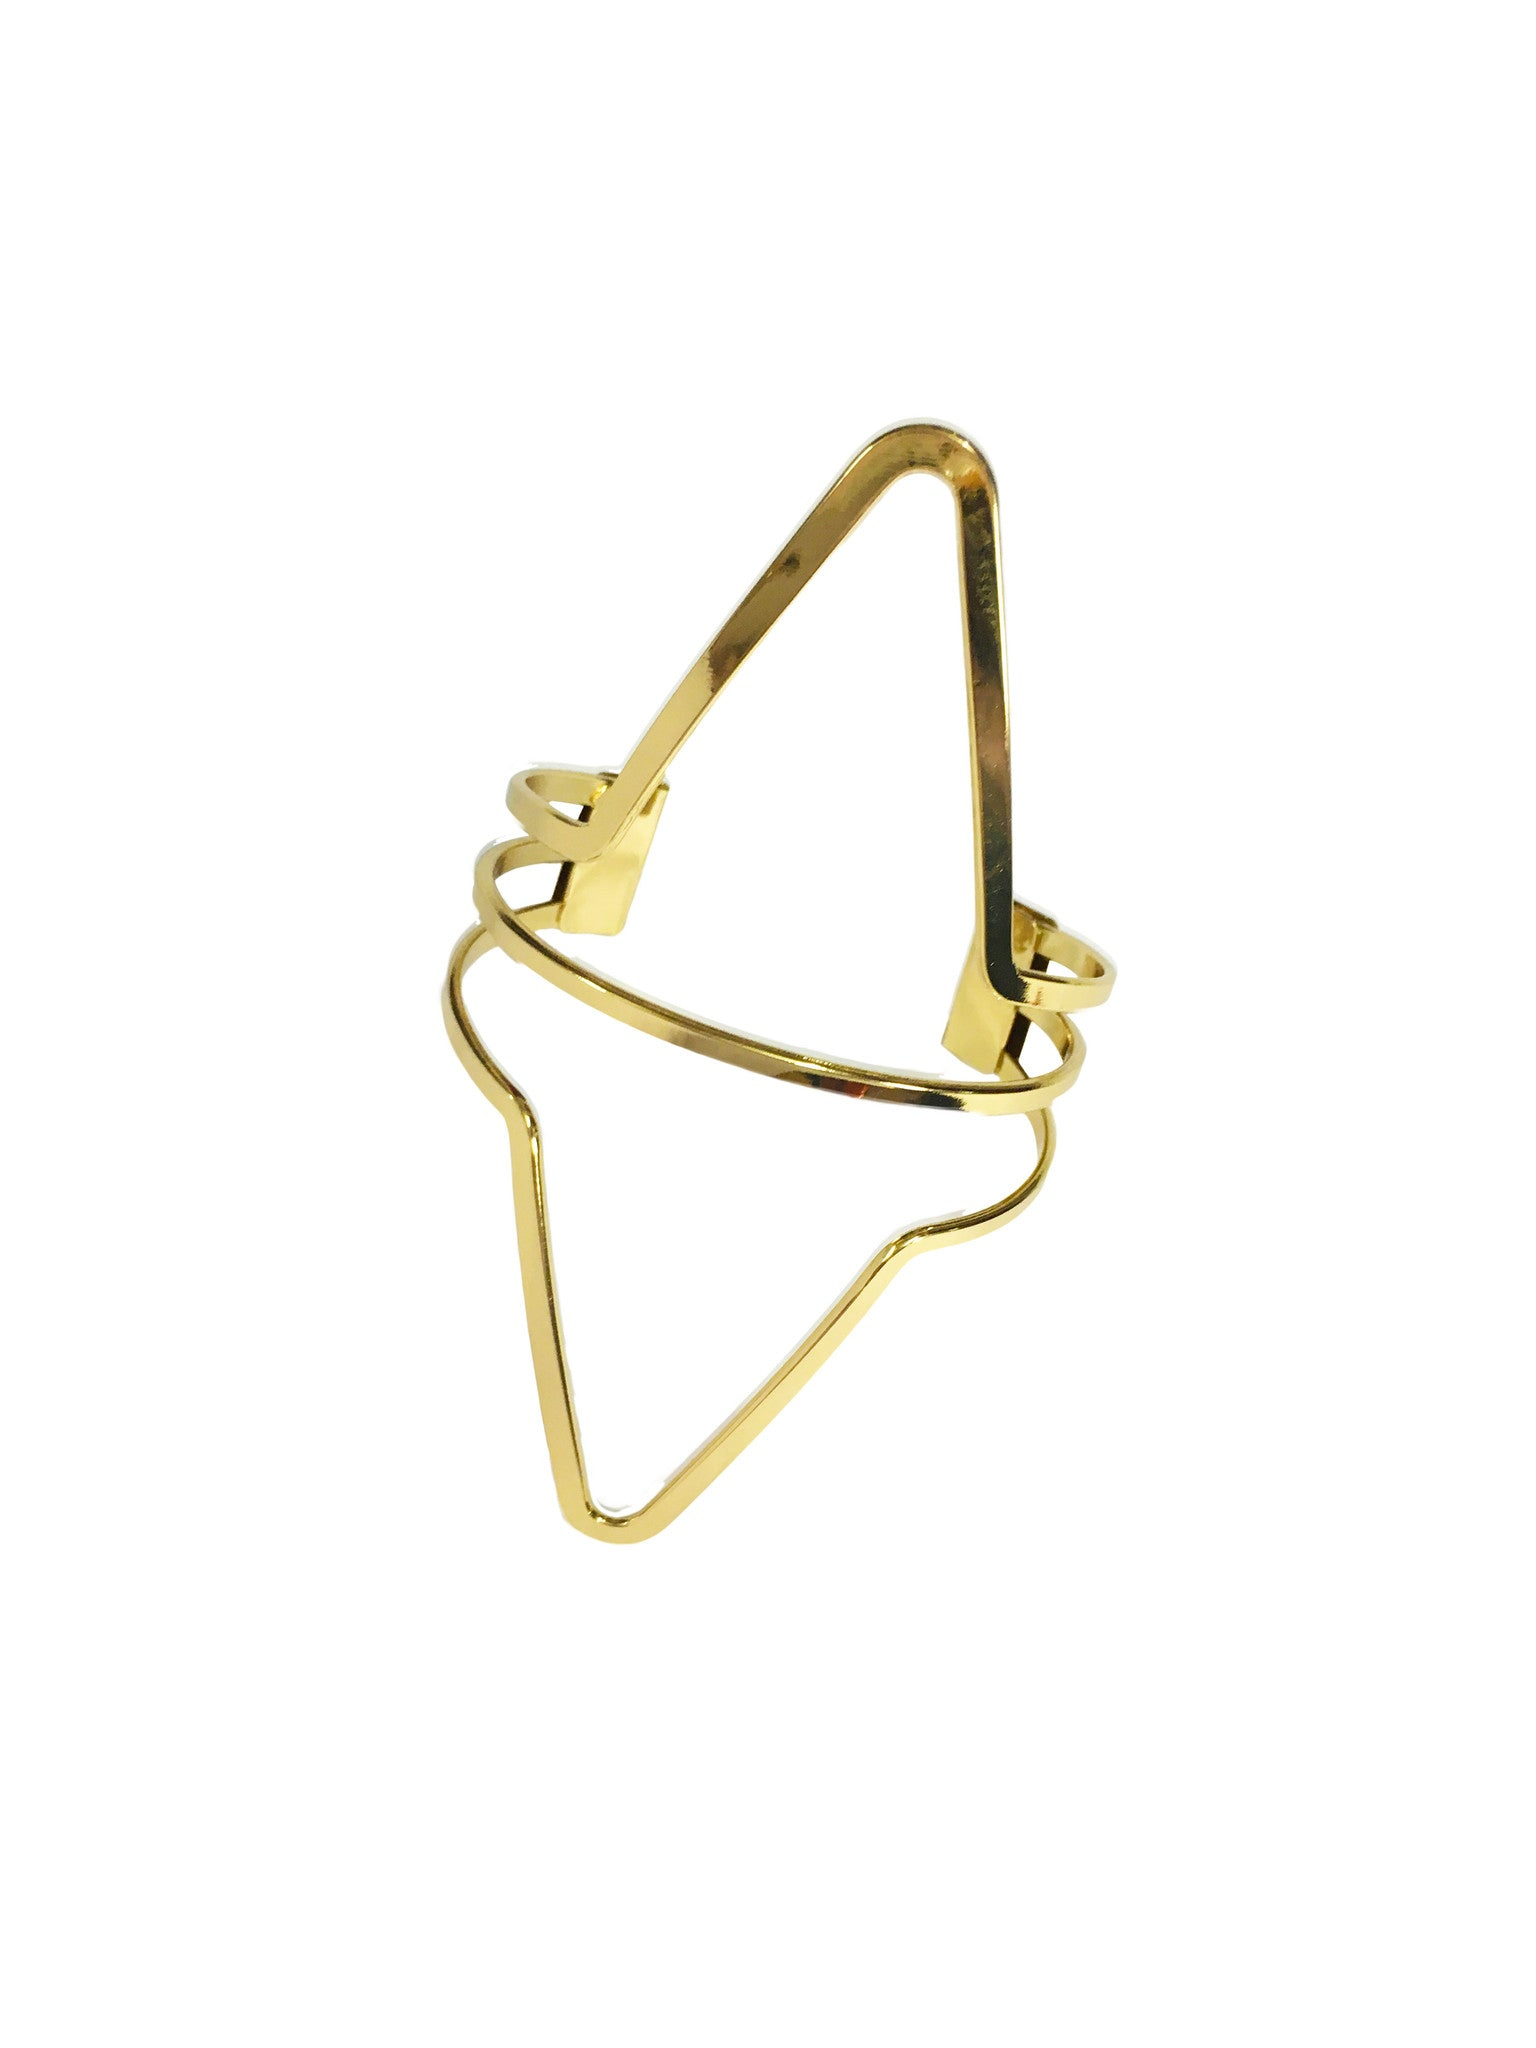 Frenzy Gold Bracelet - Crochita